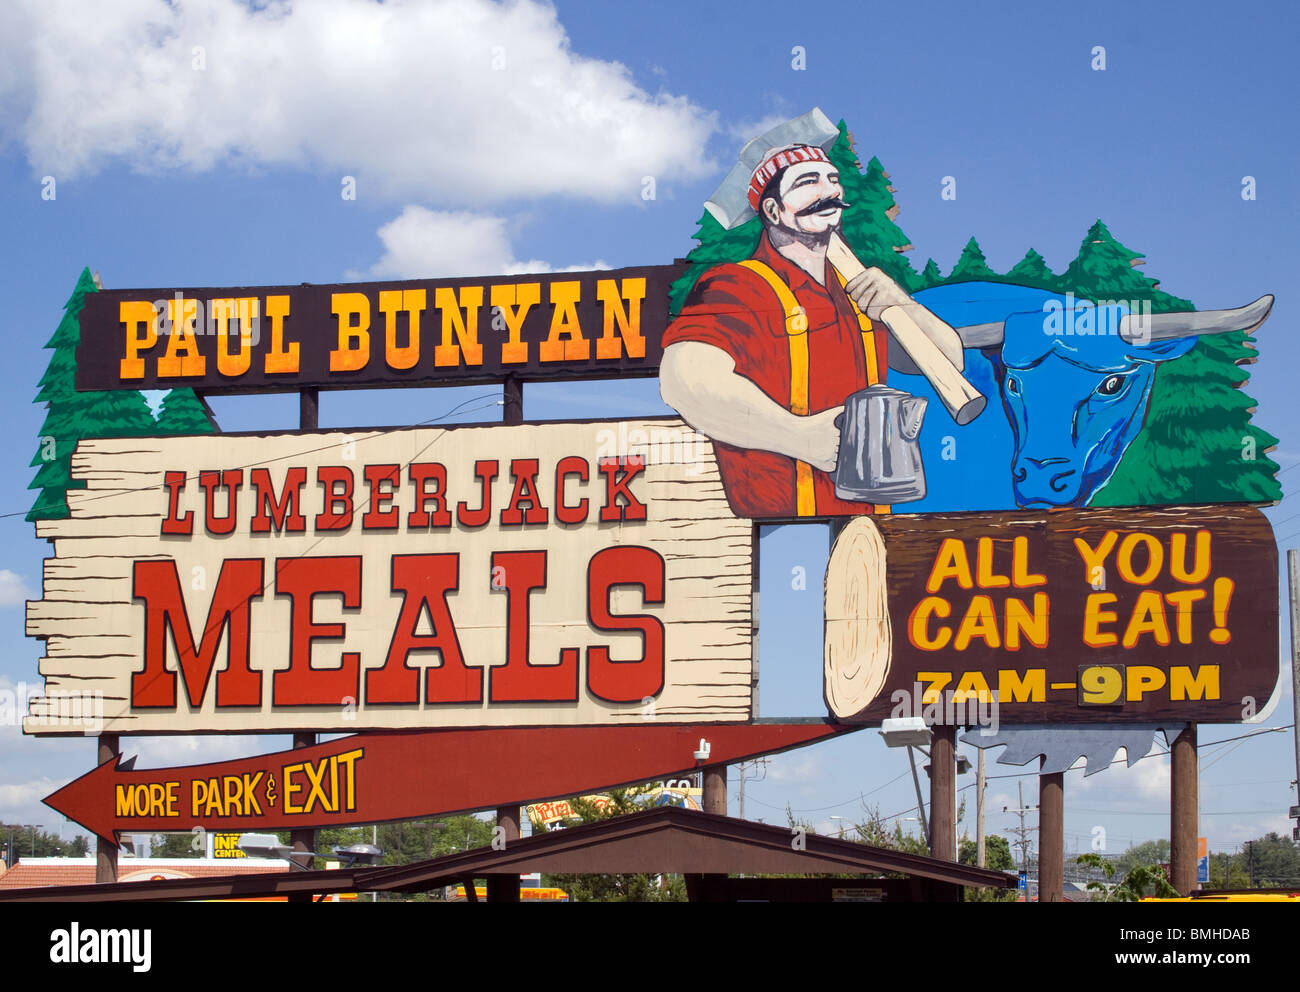 Paul Bunyan Lumberjack Meals at a restaurant in Wisconsin Dells - Stock Image